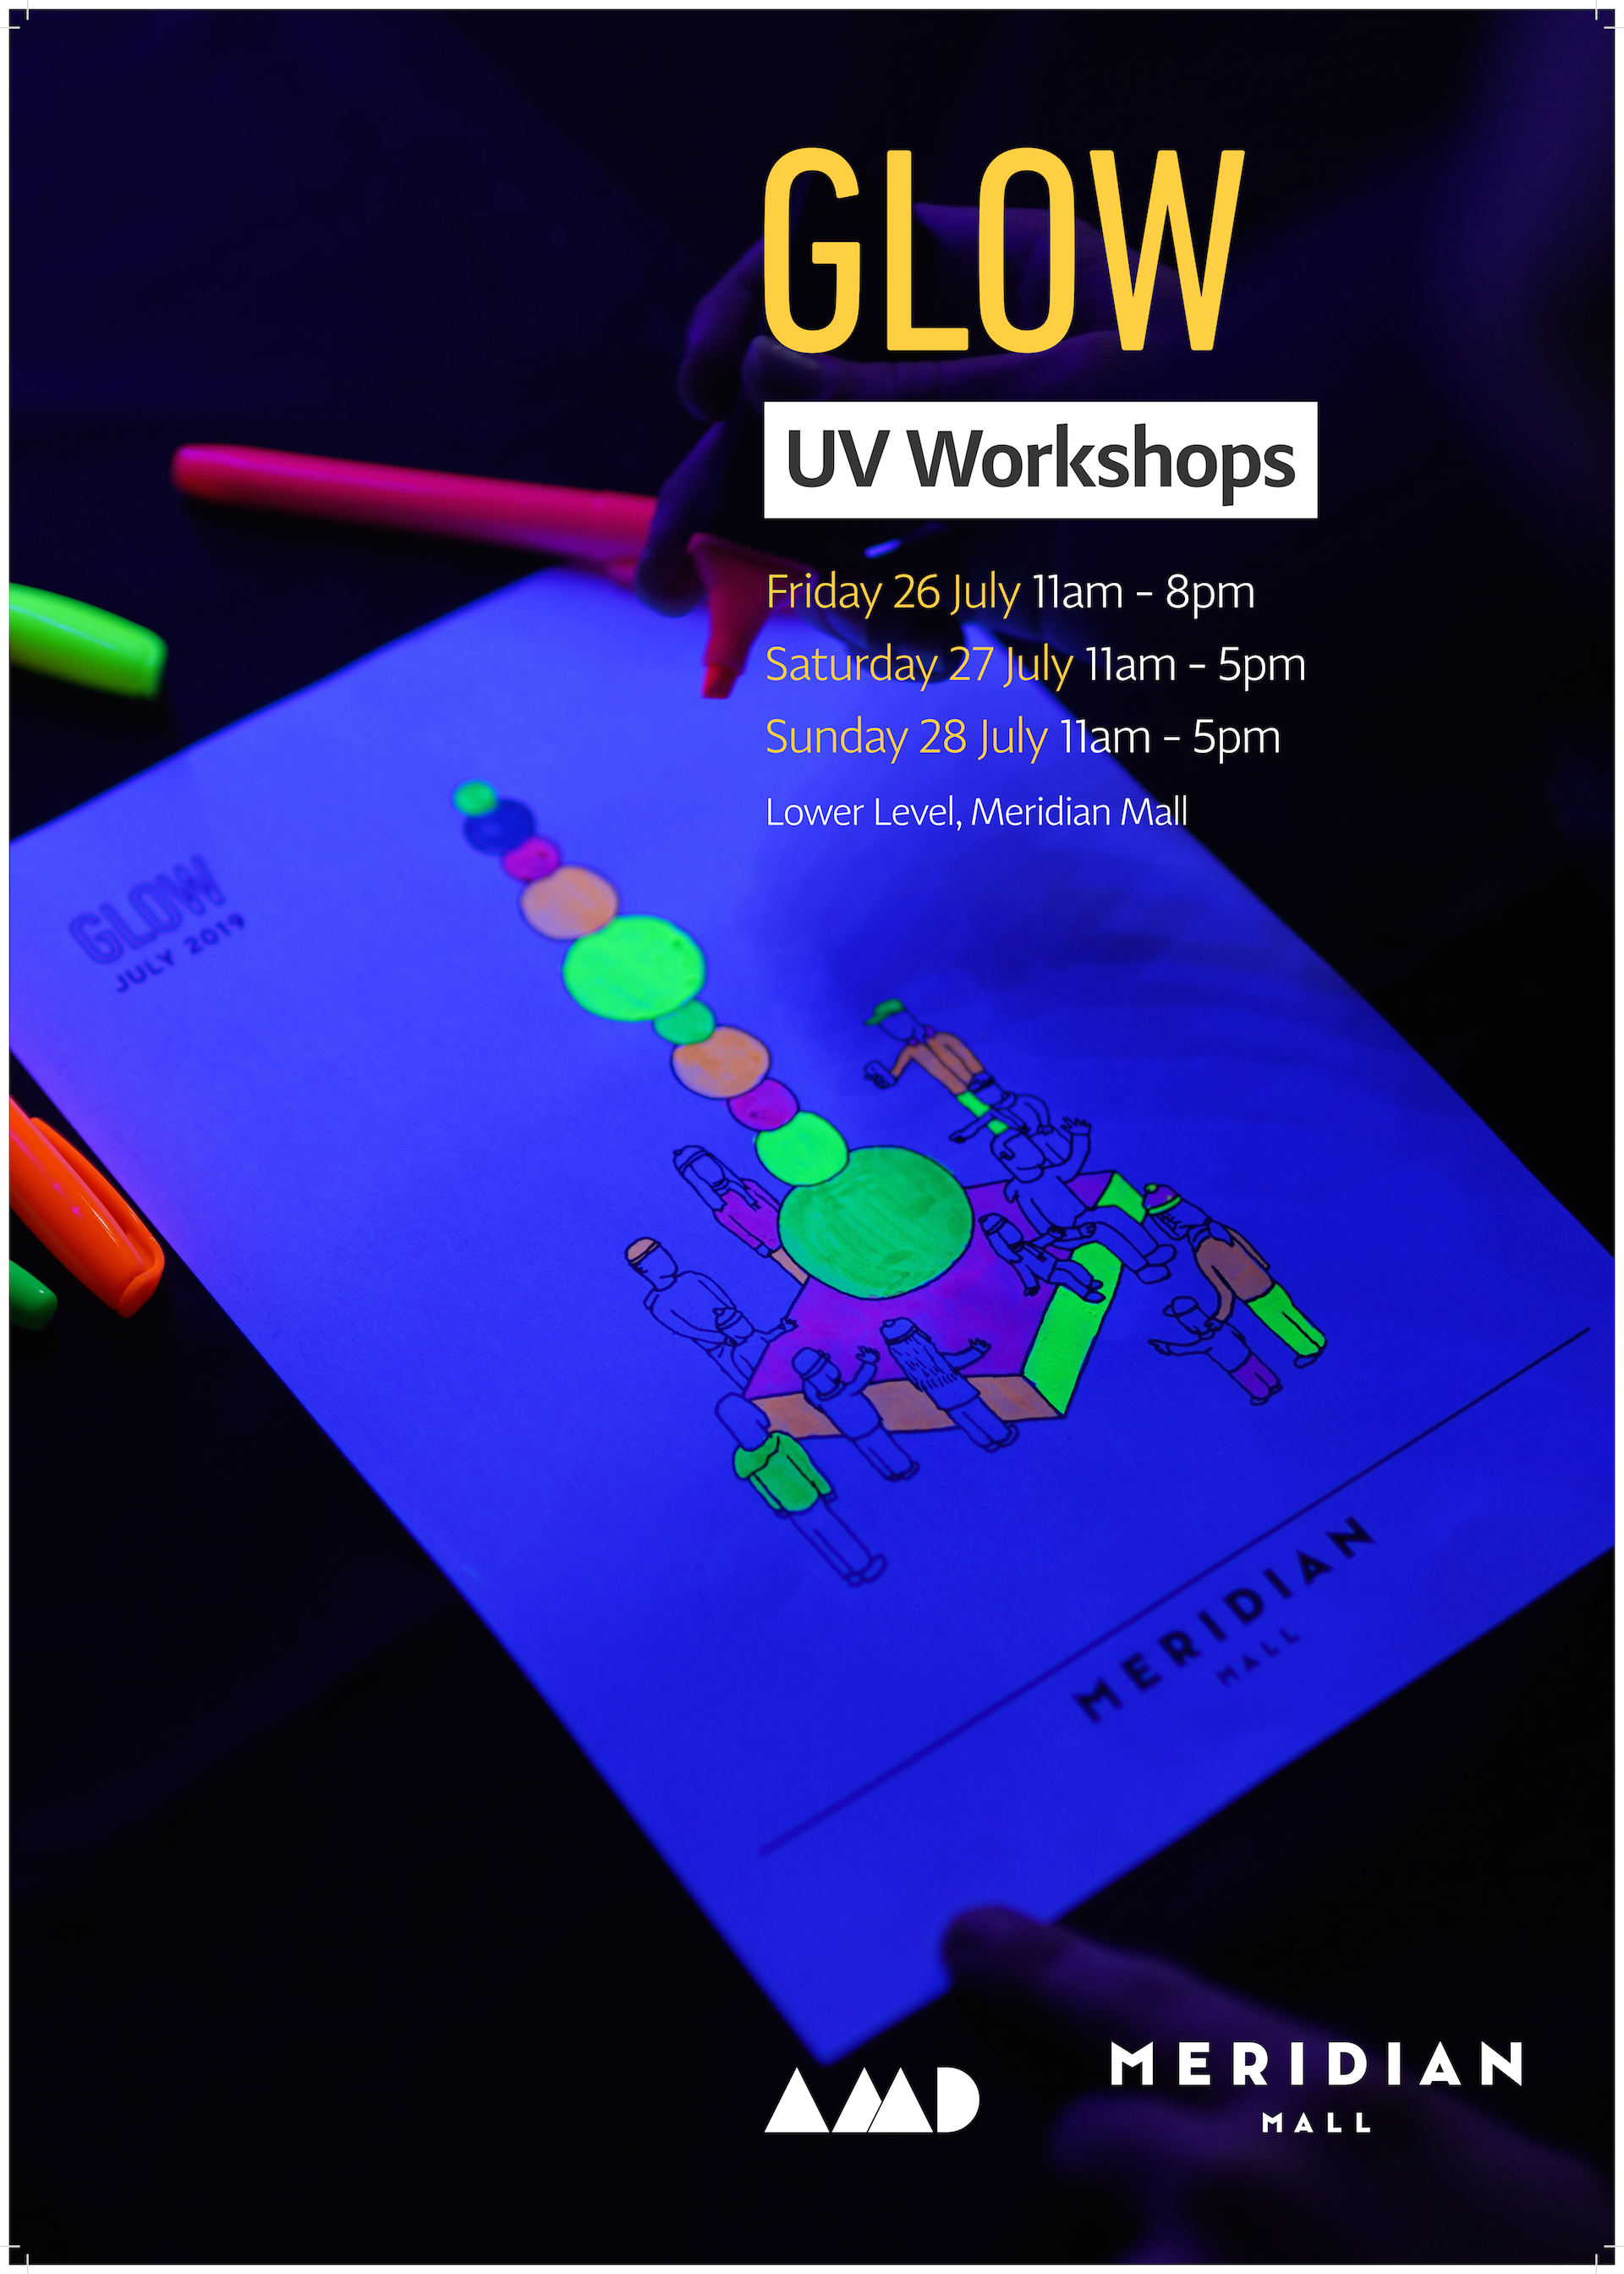 Glow UV Workshops